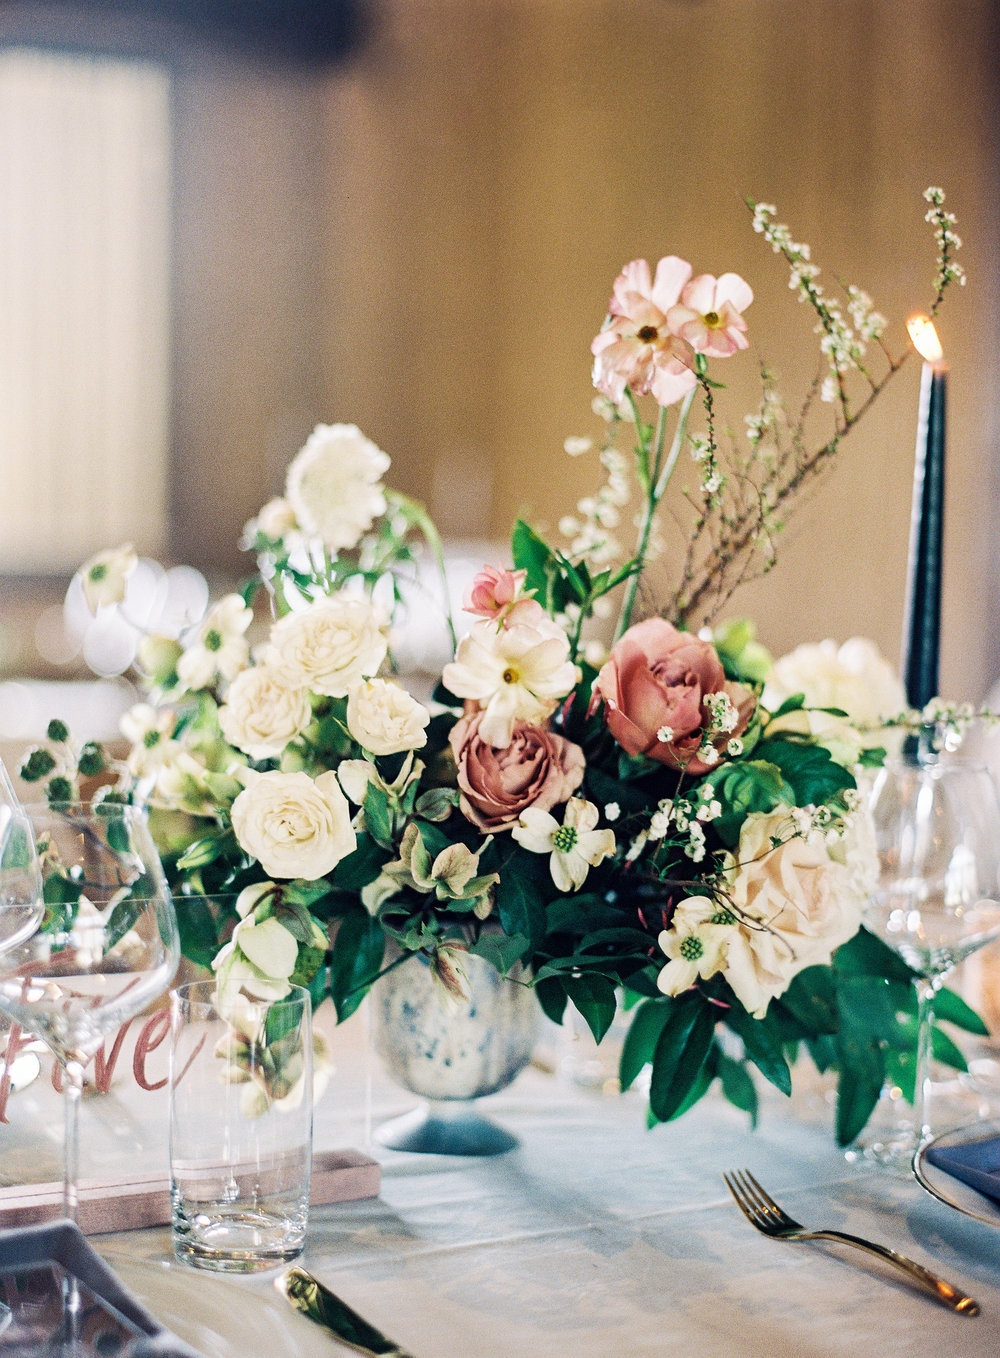 Wedding centerpieces with metallic rose gold calligraphy table numbers on acrylic   lettering by Chavelli www.chavelli.com